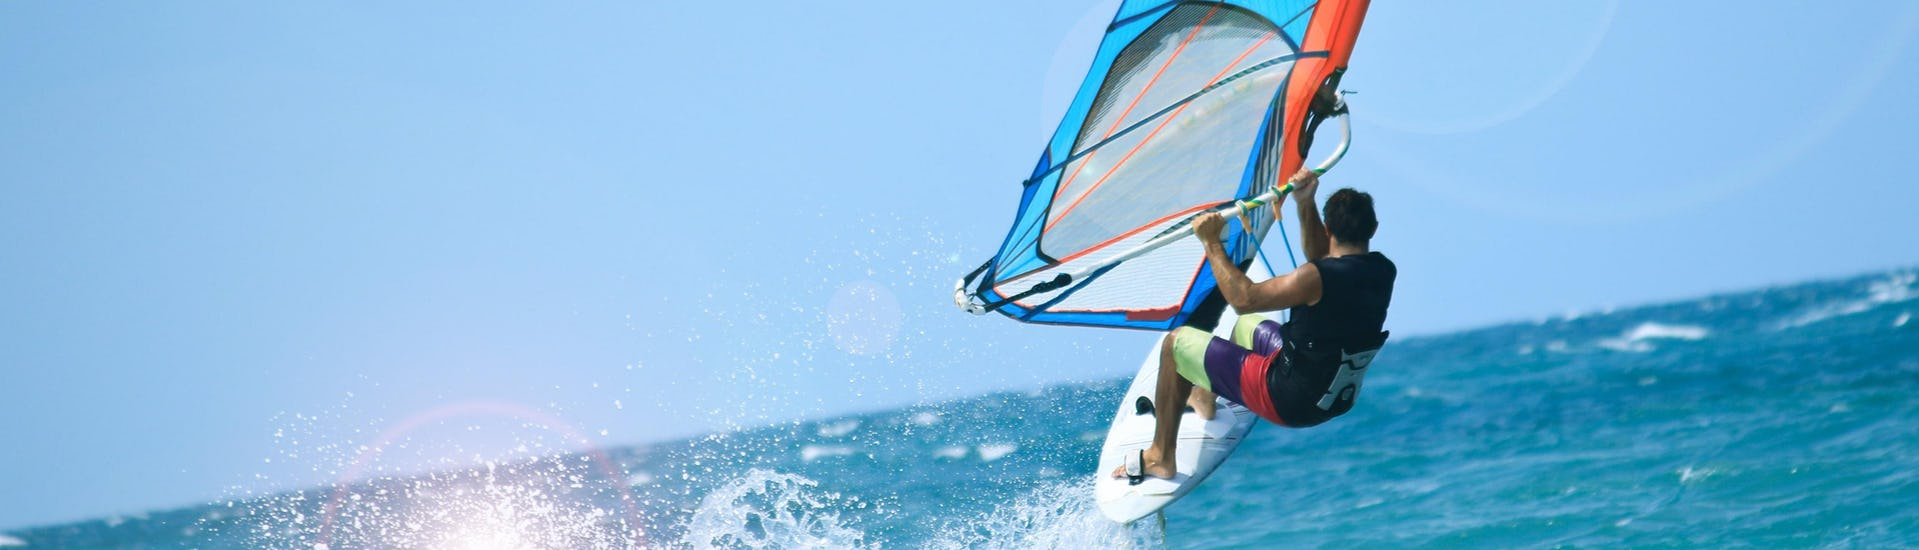 A young man windsurfing in the holiday destination of Larnaca.